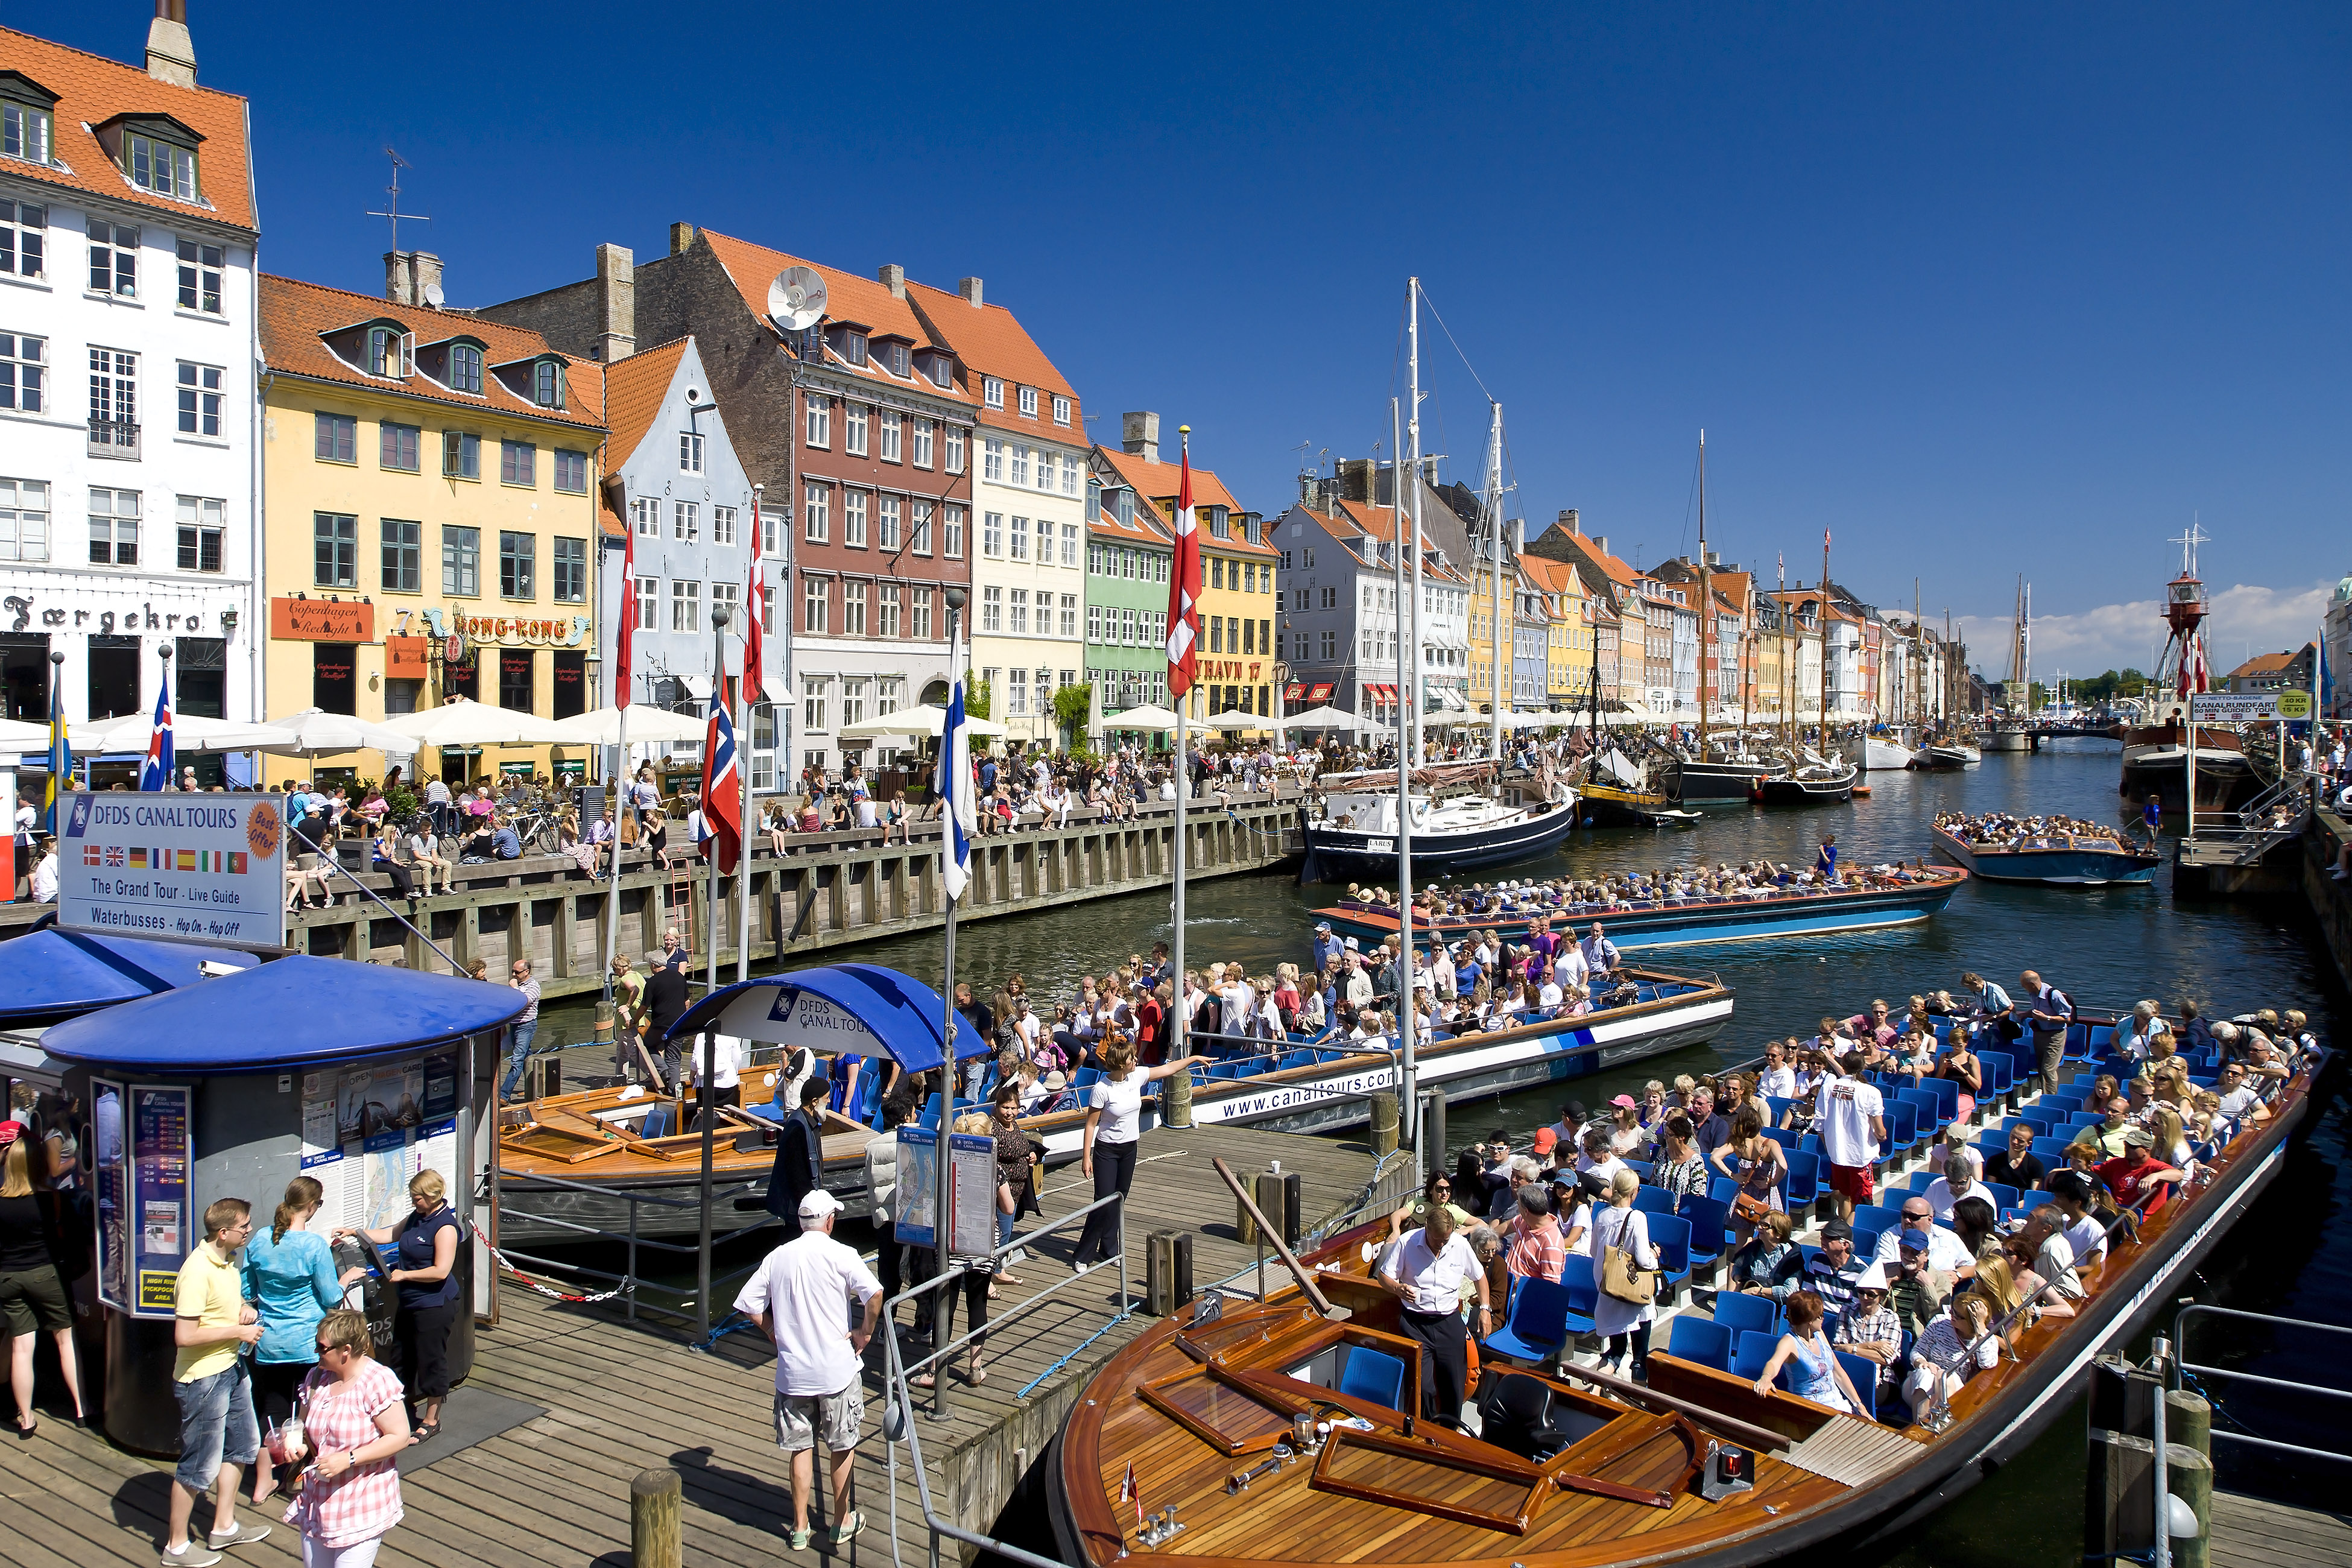 Tourboats in Nyhavn Canal on in Copenhagen on May 7, 2011.